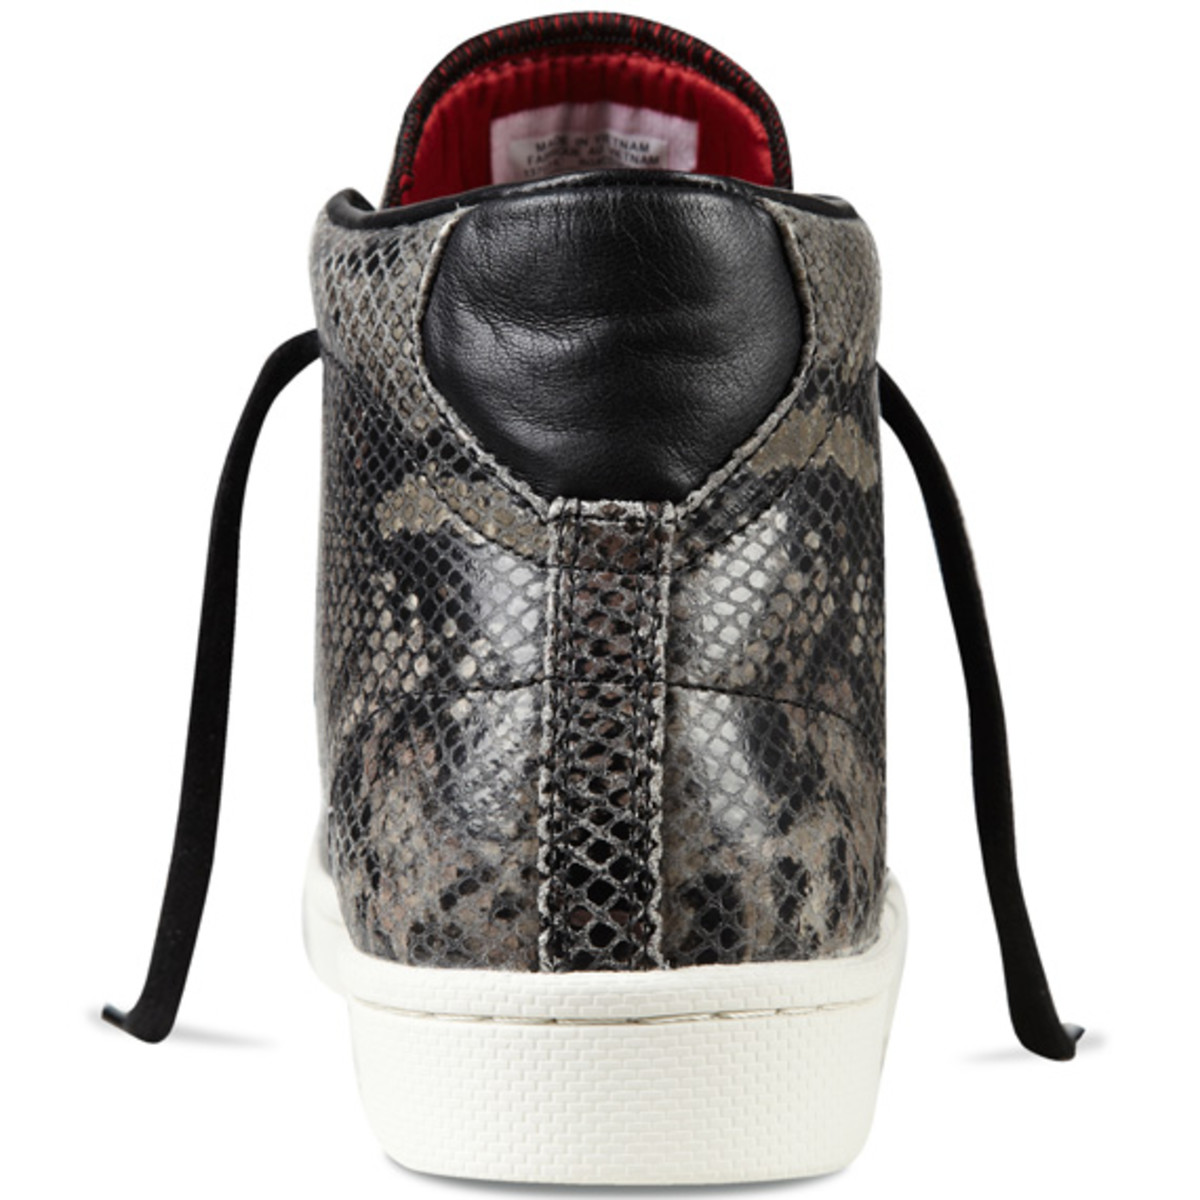 converse-pro-leather-year-of-the-snake-edition-13